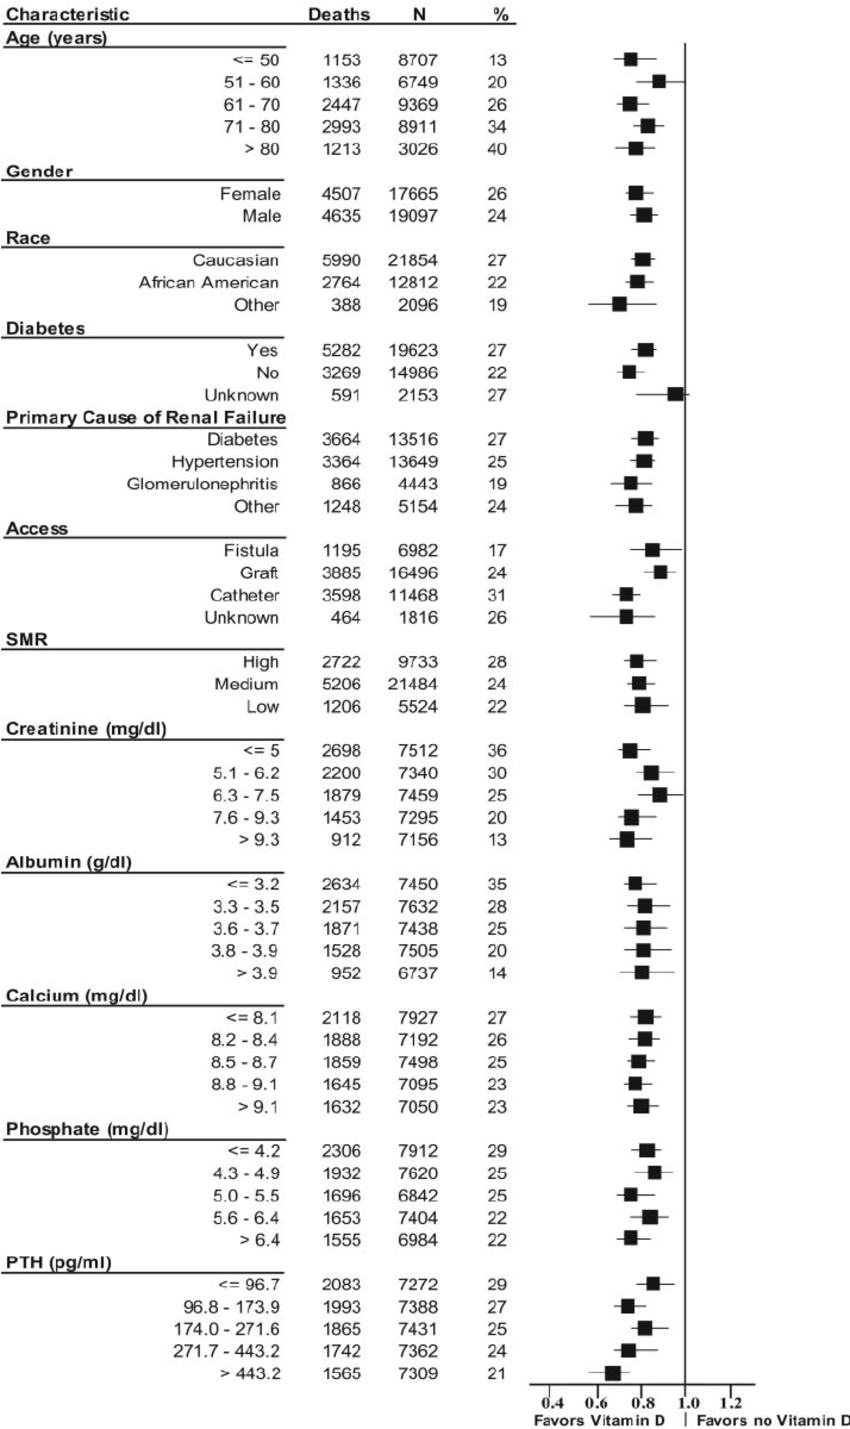 Hazard ratios (HR) for mortality associated with